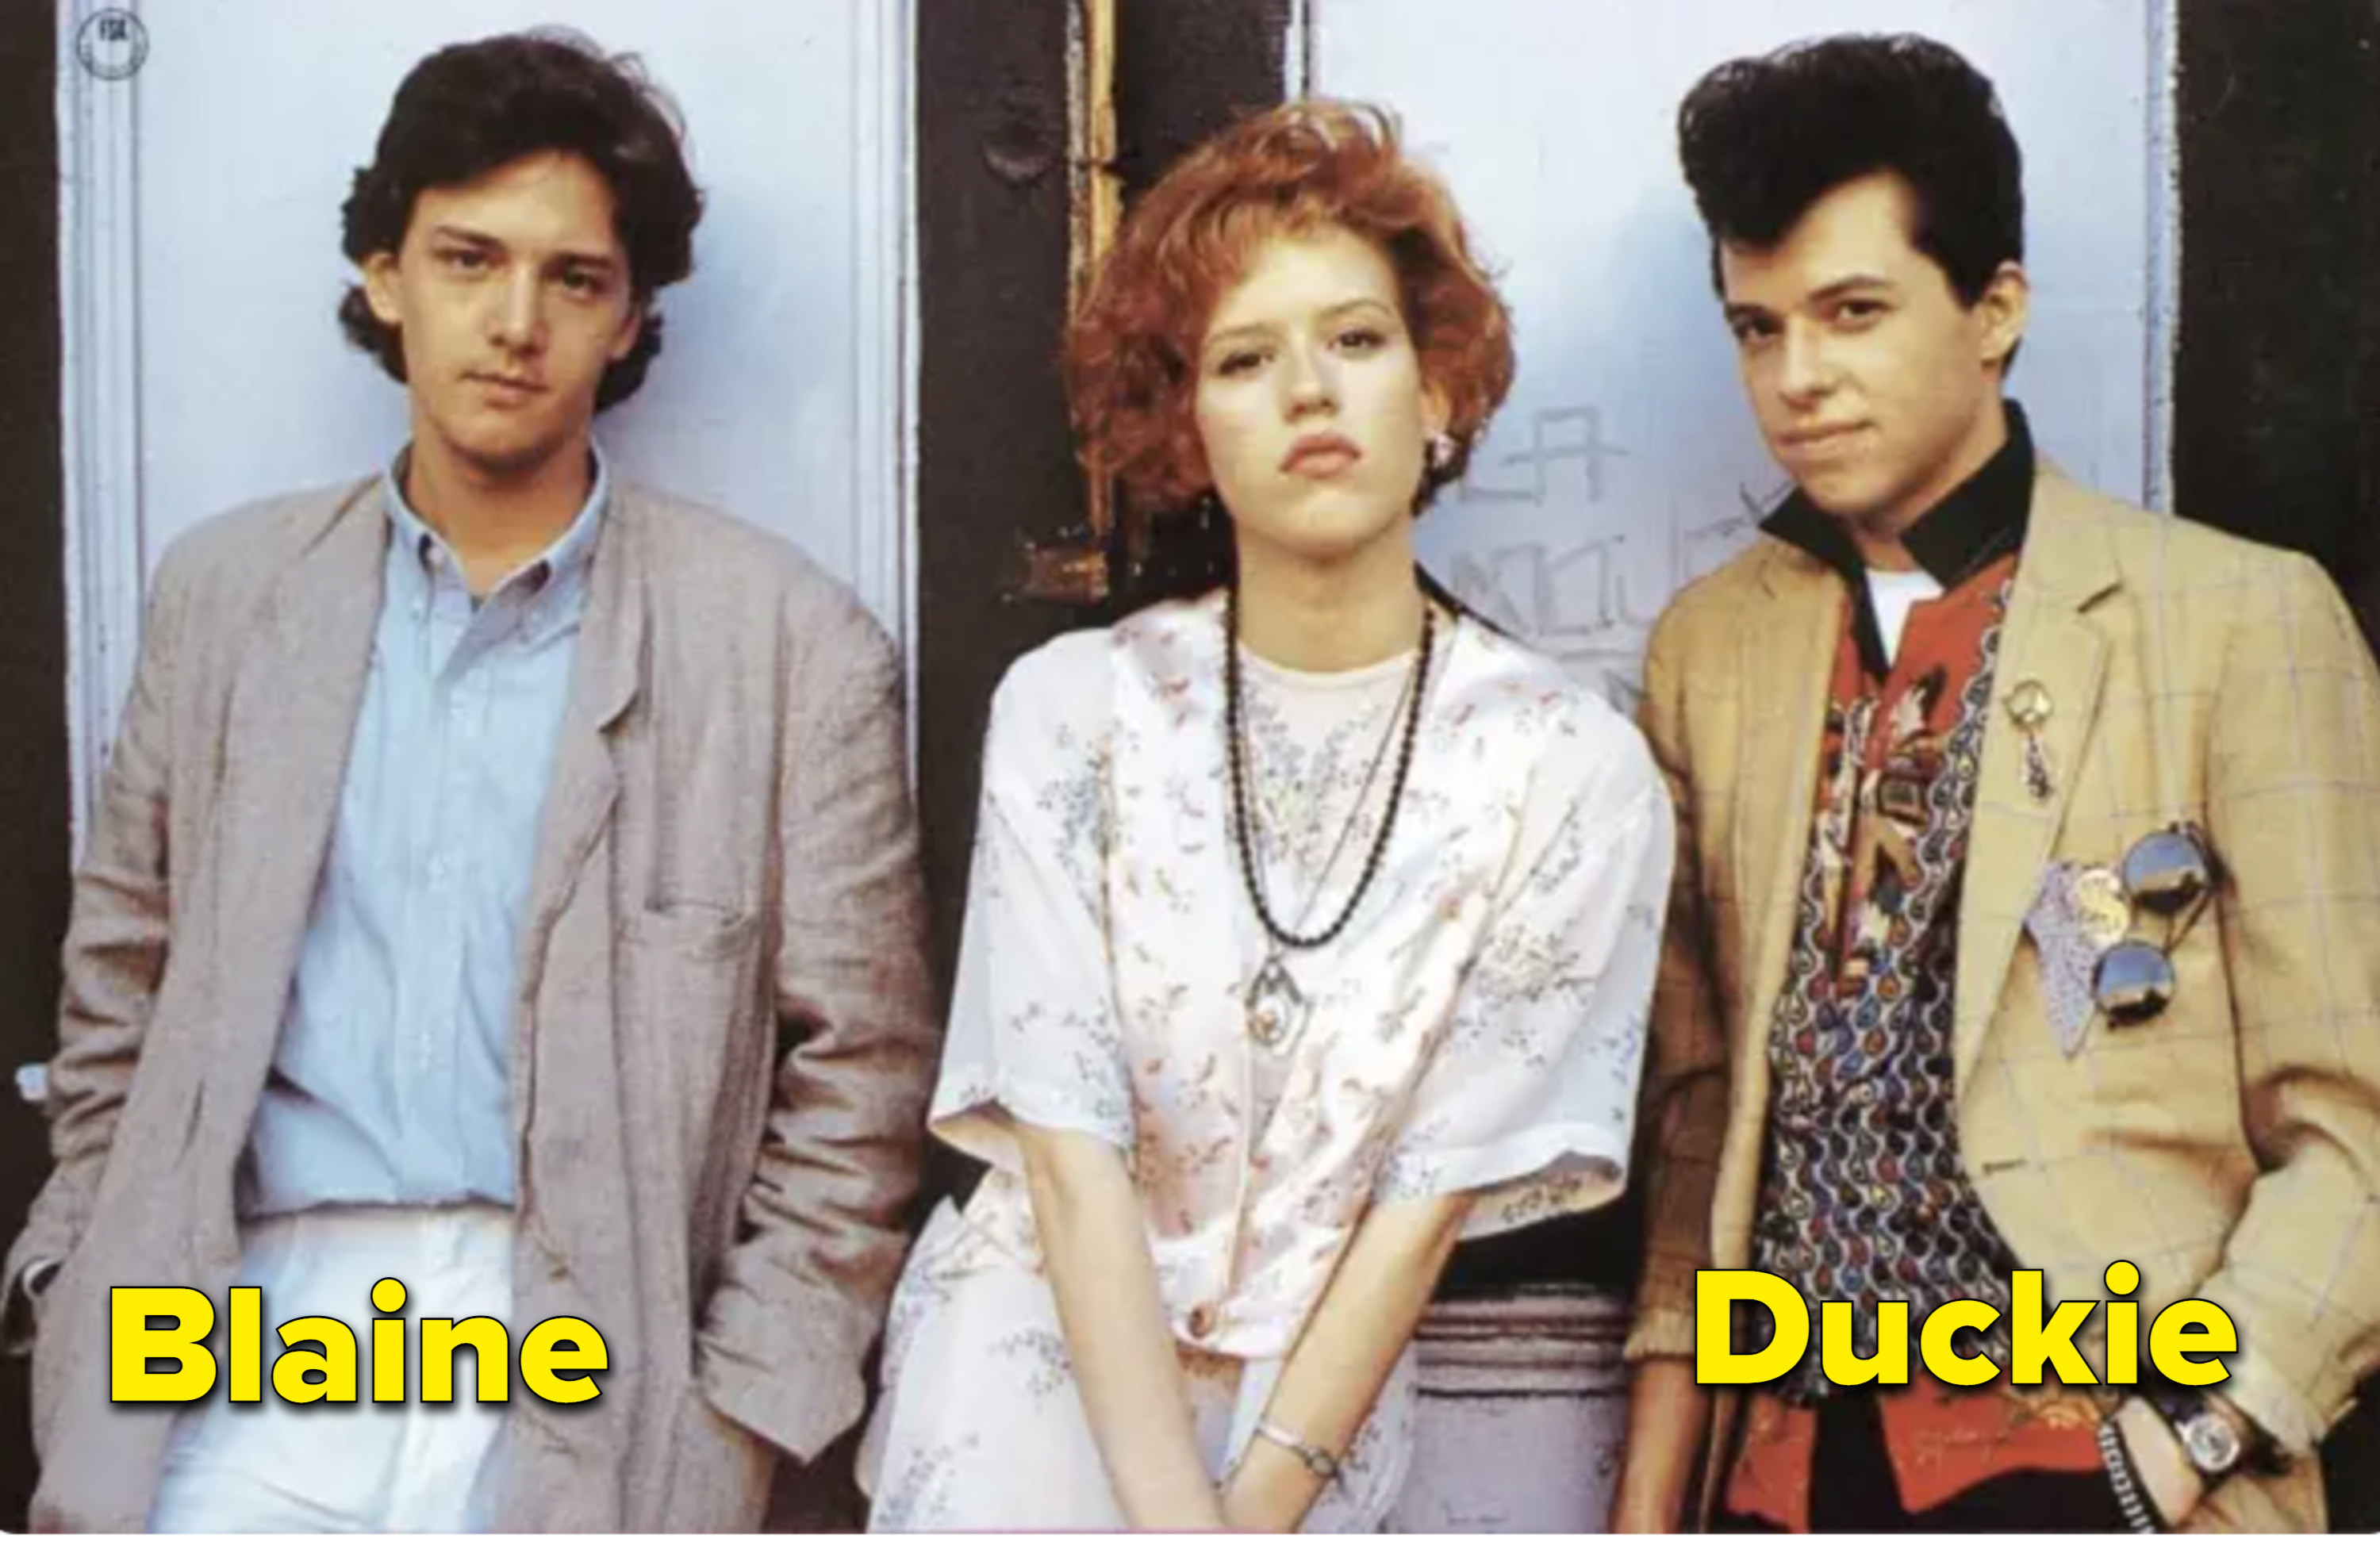 McCarthy, Ringwald, and Cryer looking very 80s in the movie